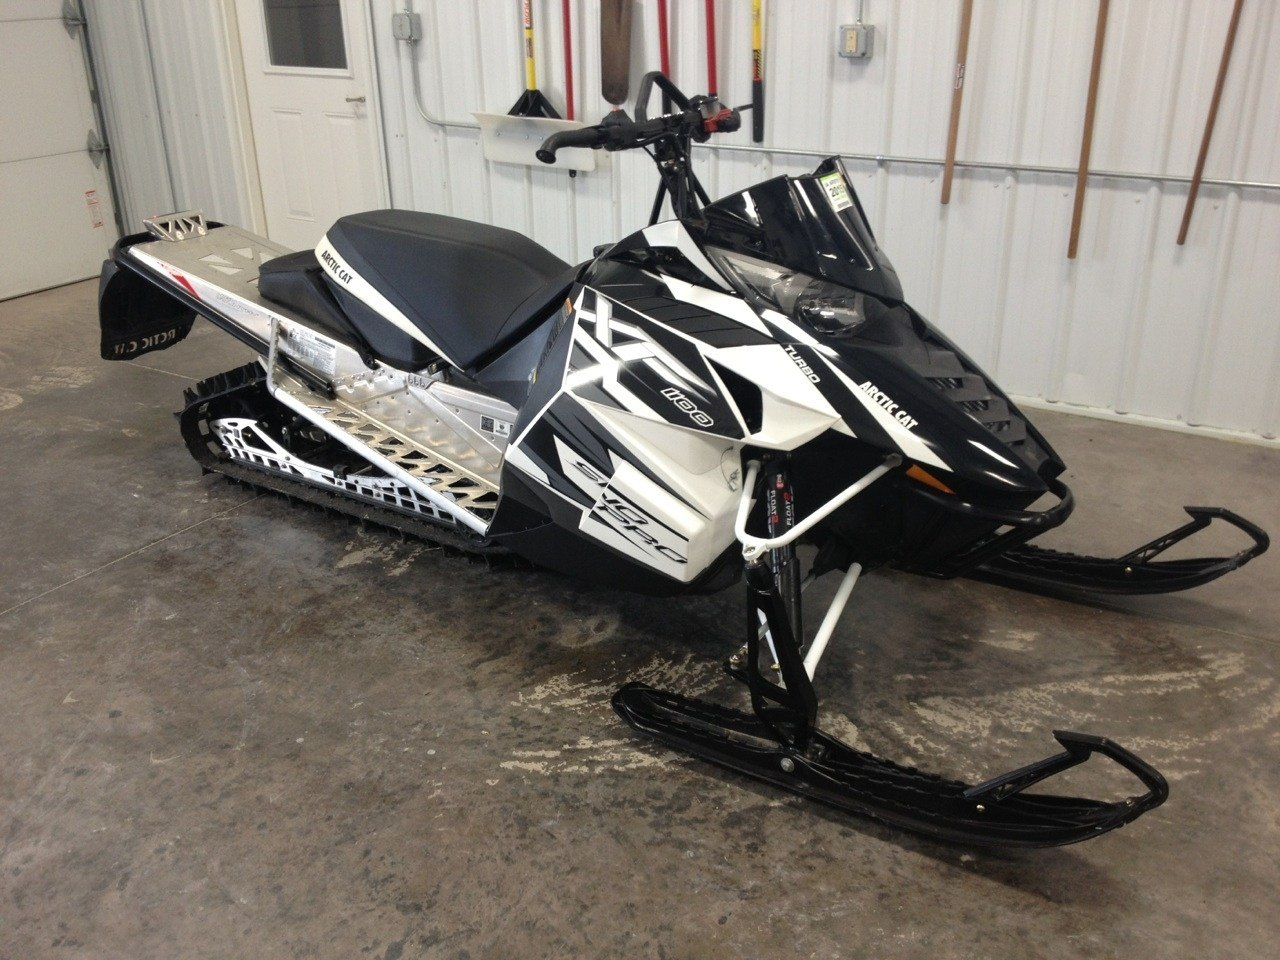 2013 Arctic Cat XF 1100 Turbo Sno Pro High Country Limited 1